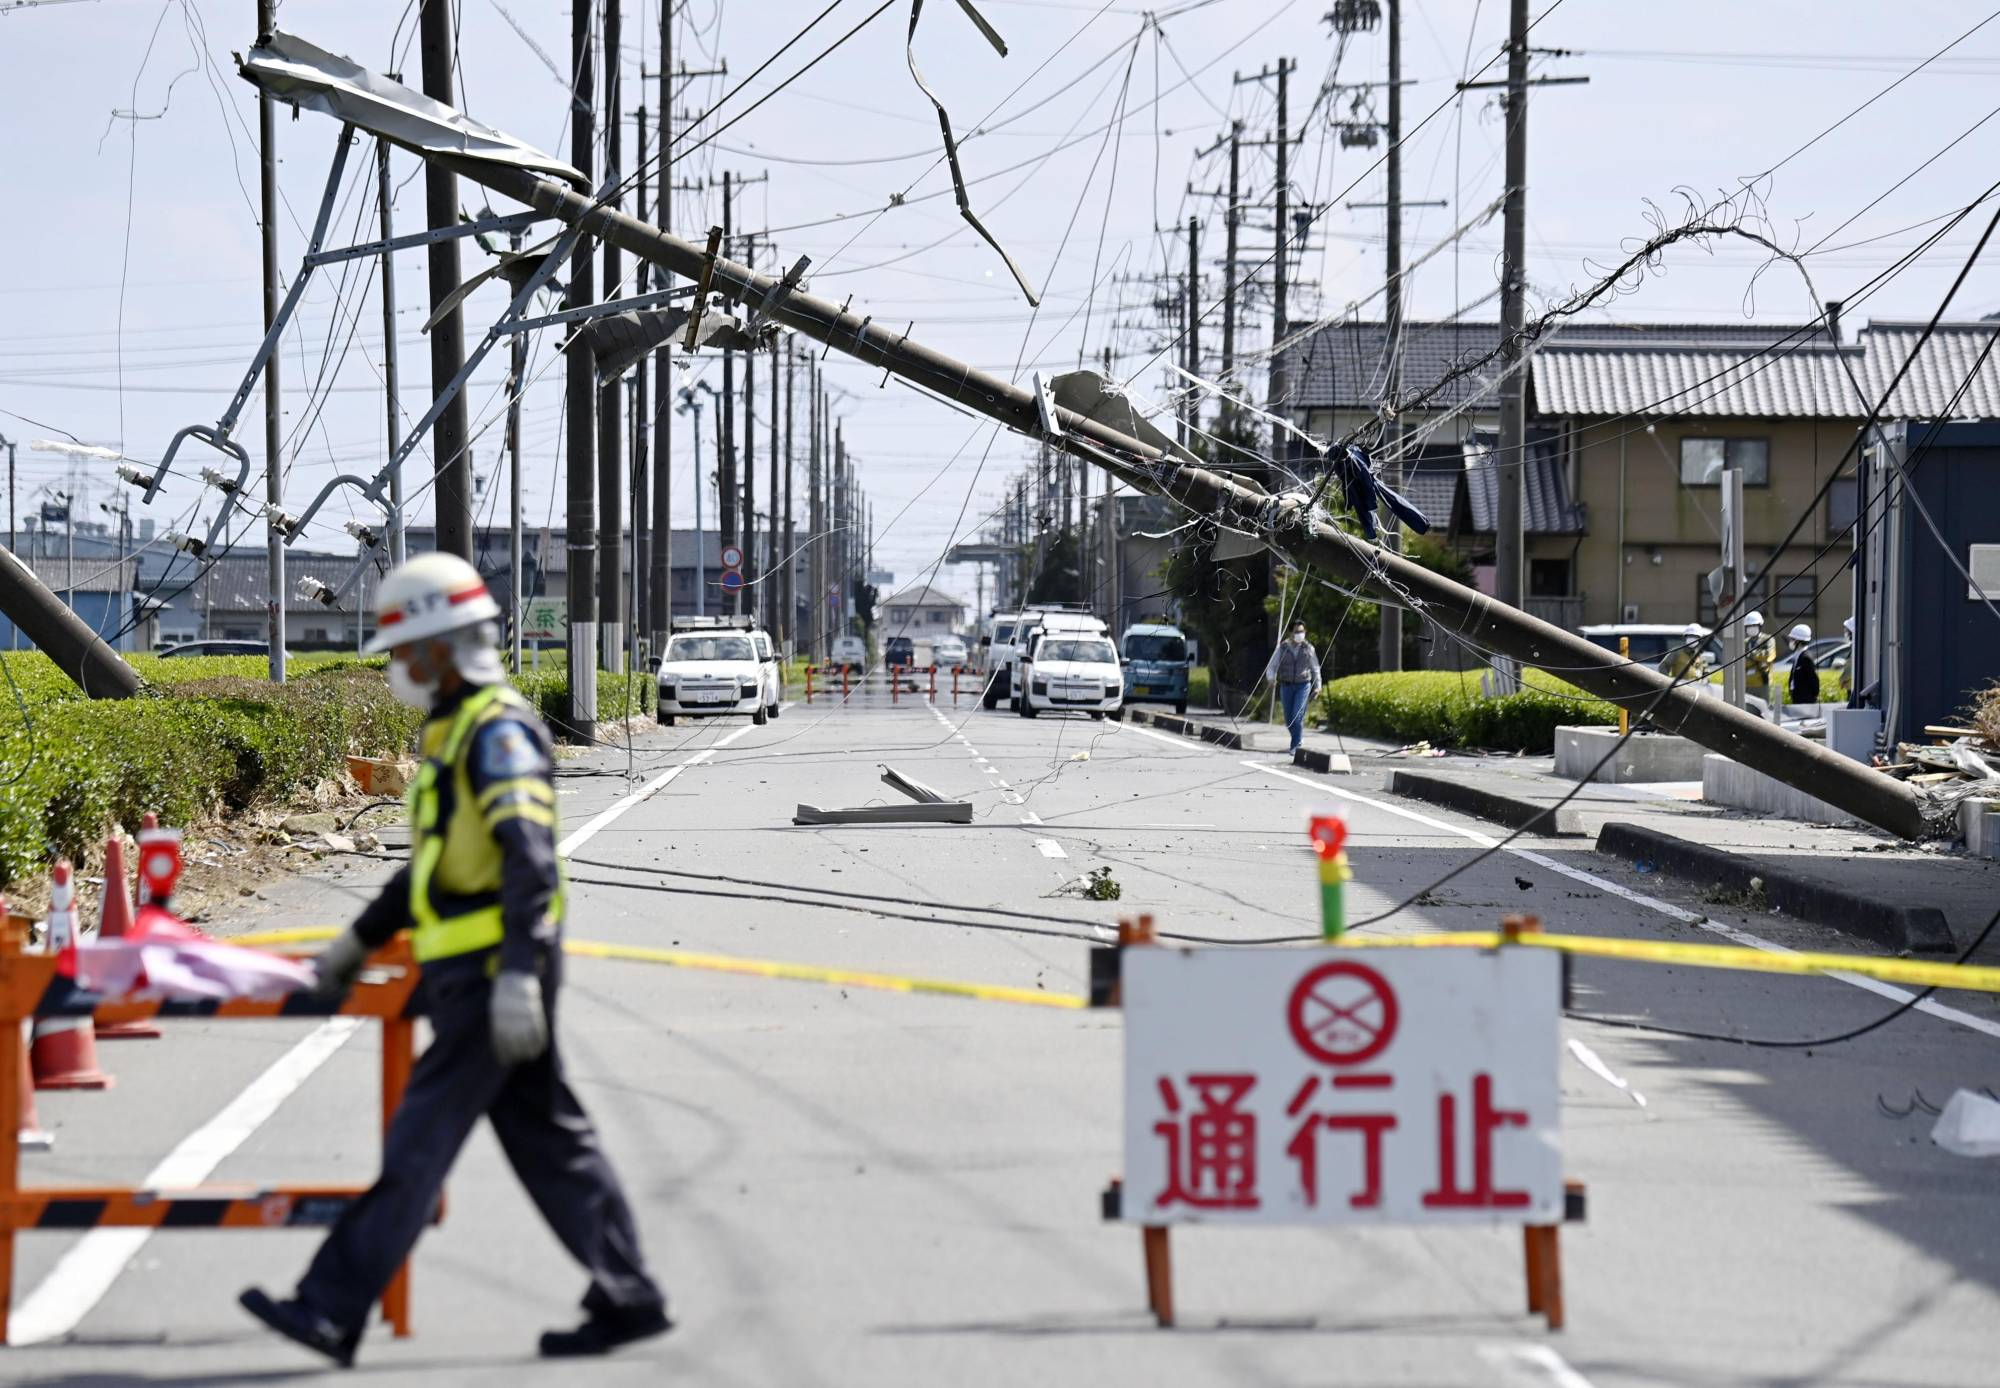 Meteorological authorities said they are investigating the possibility of tornadoes after building roofs were torn off, glass windows shattered and cars thrown on their sides in Makinohara, Shizuoka Prefecture. | KYODO